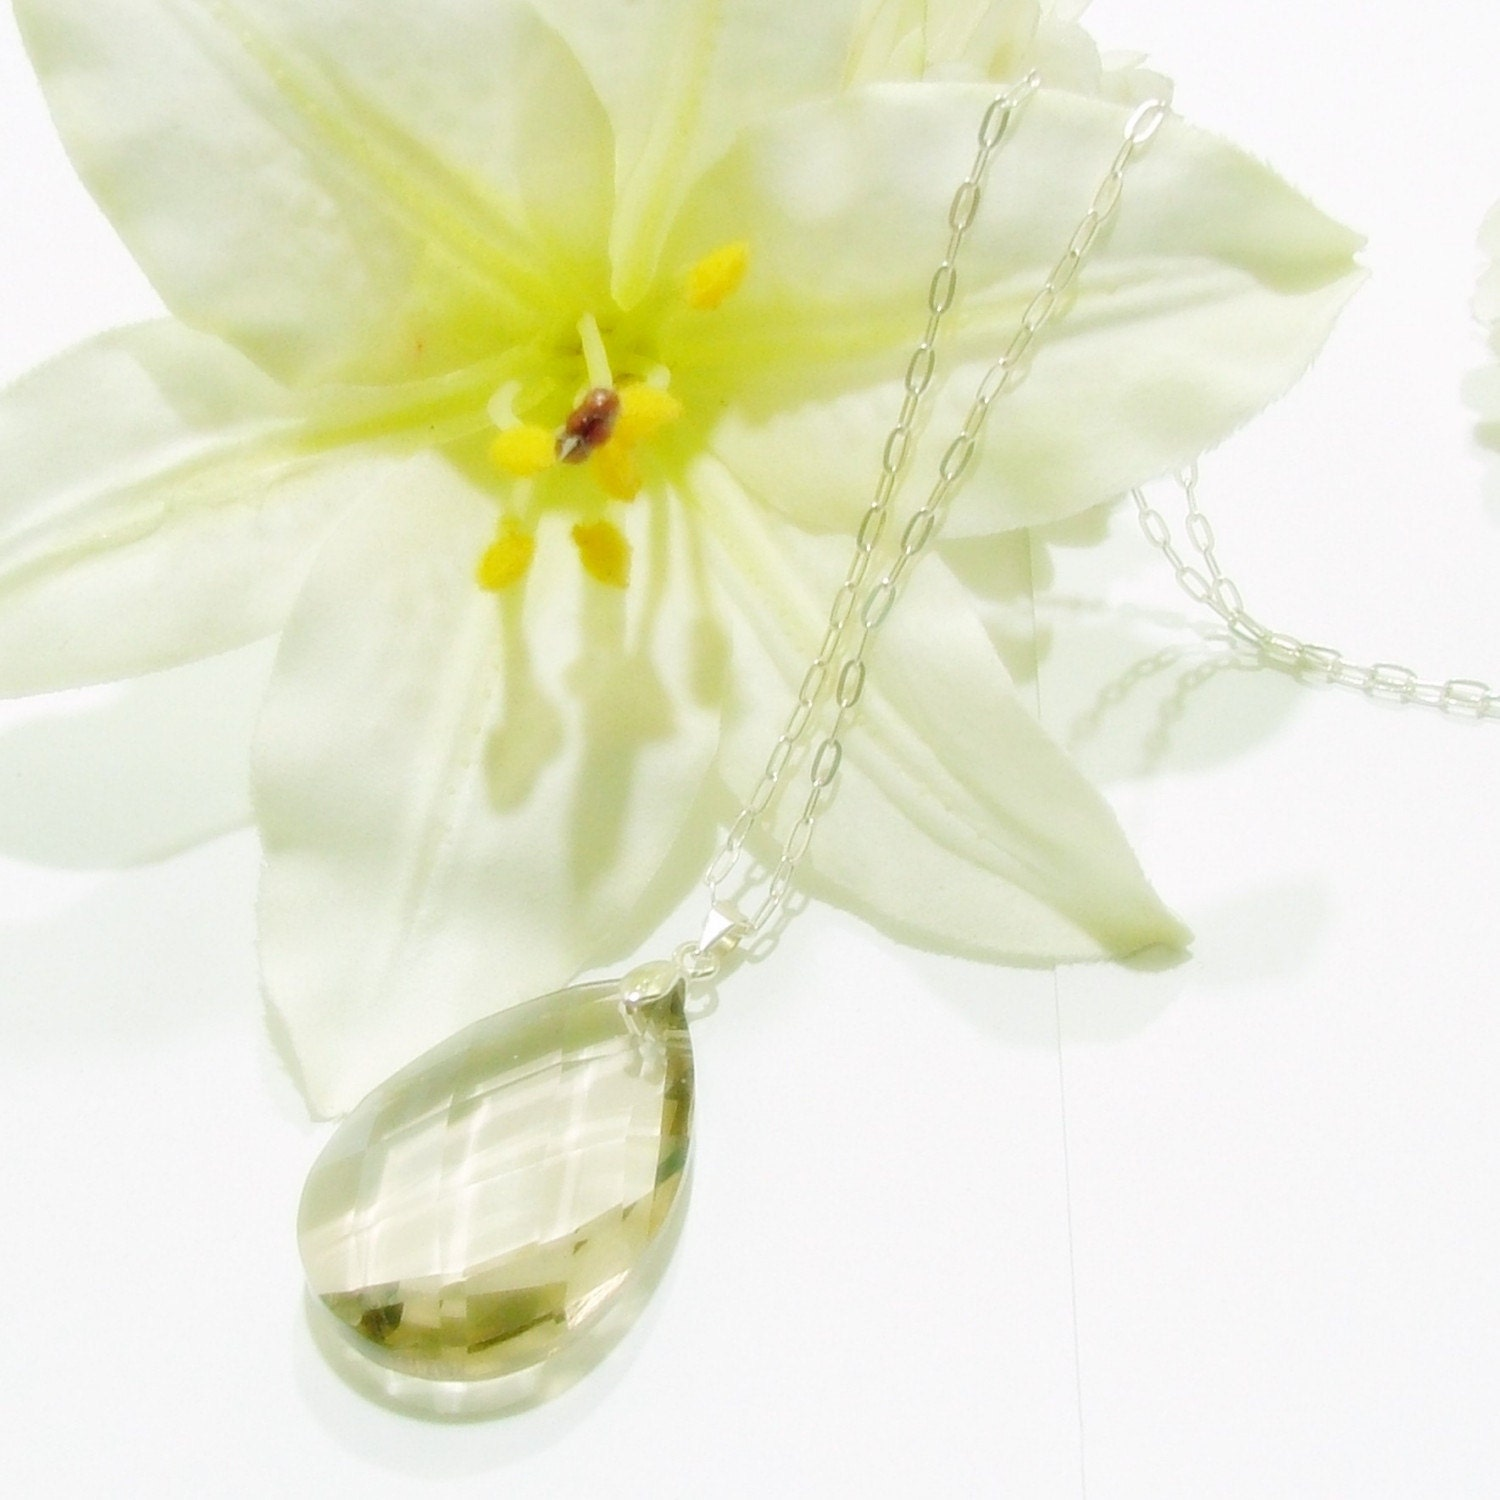 Champaign Teardrop Pendant with Sterling Silver Necklace